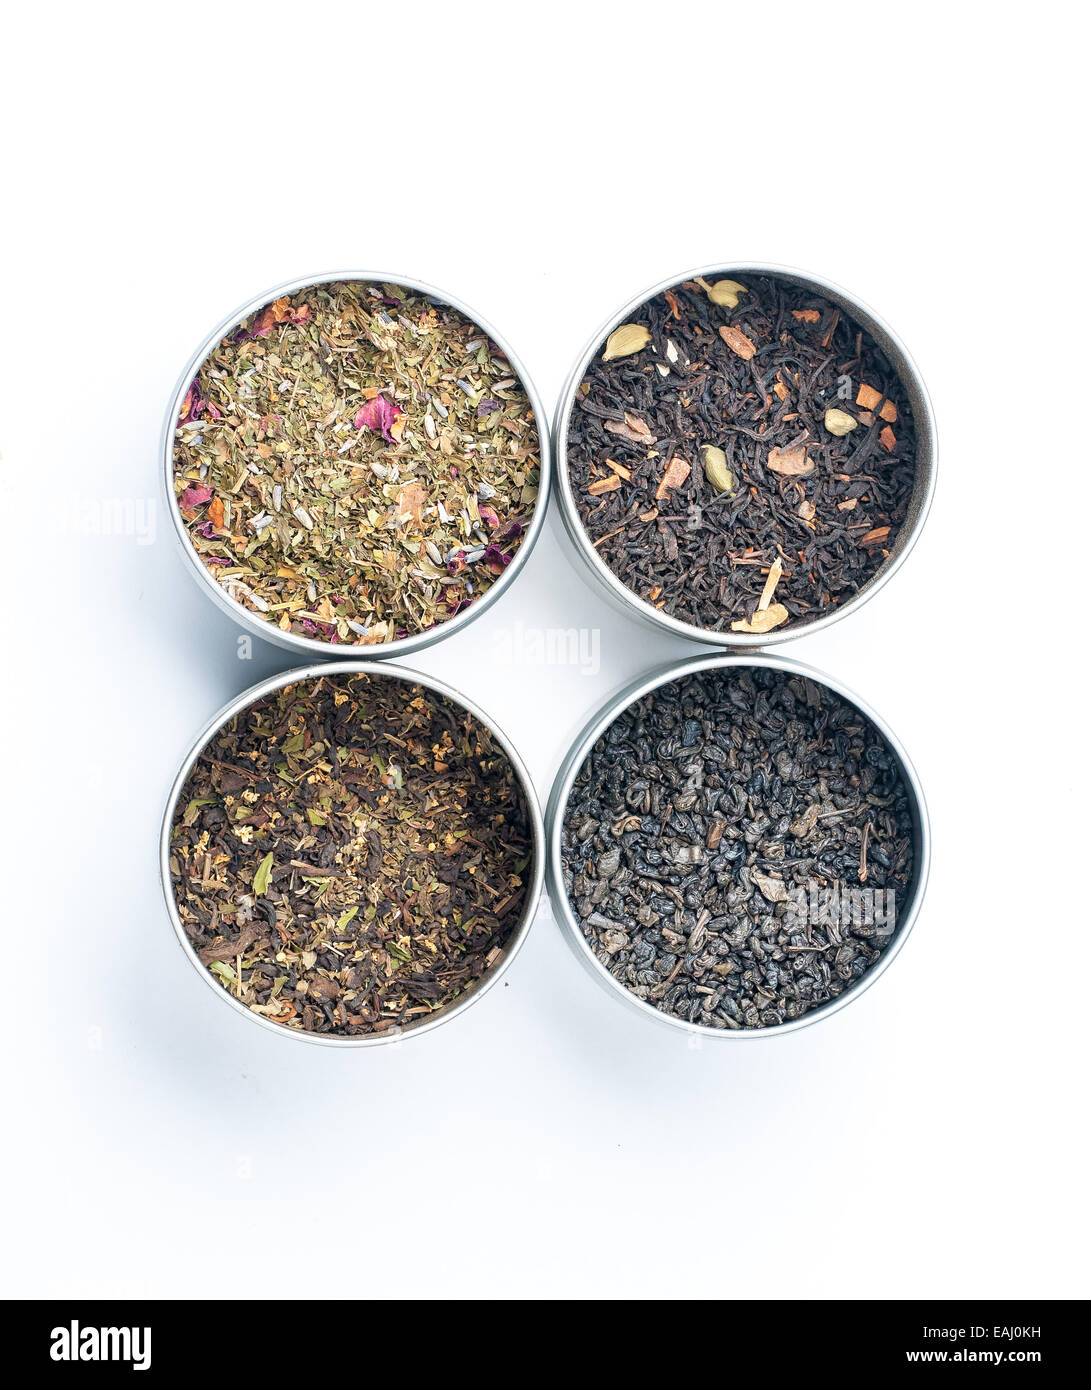 Dried tea in tins - Stock Image